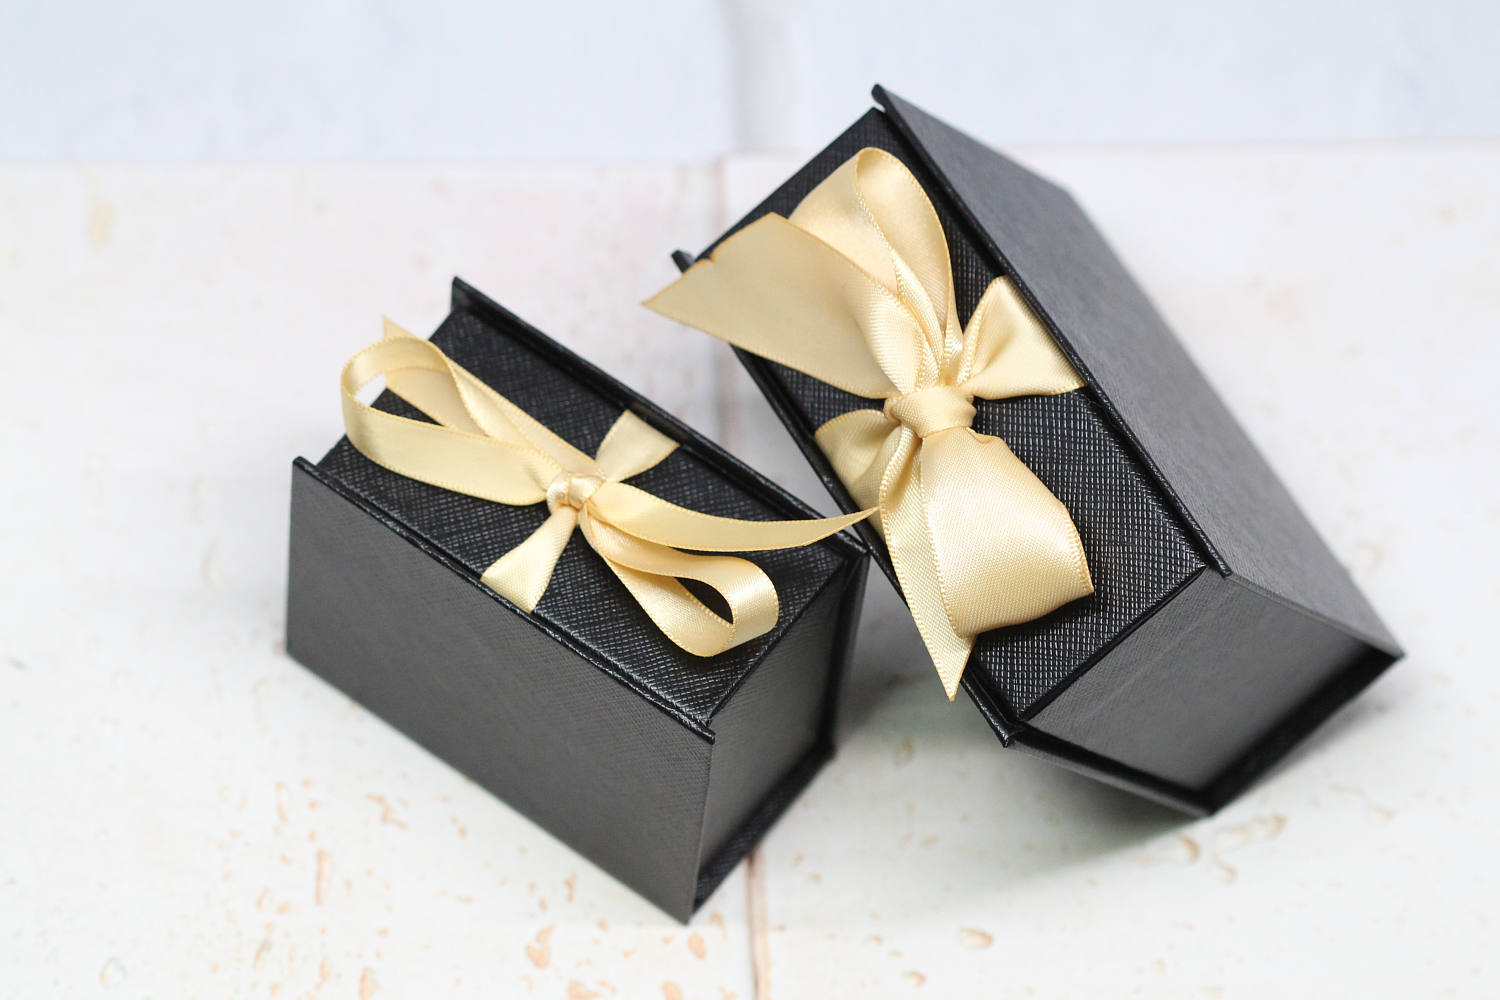 Elegant Simple Black Jewelry Gift Boxes with Gold Ribbons